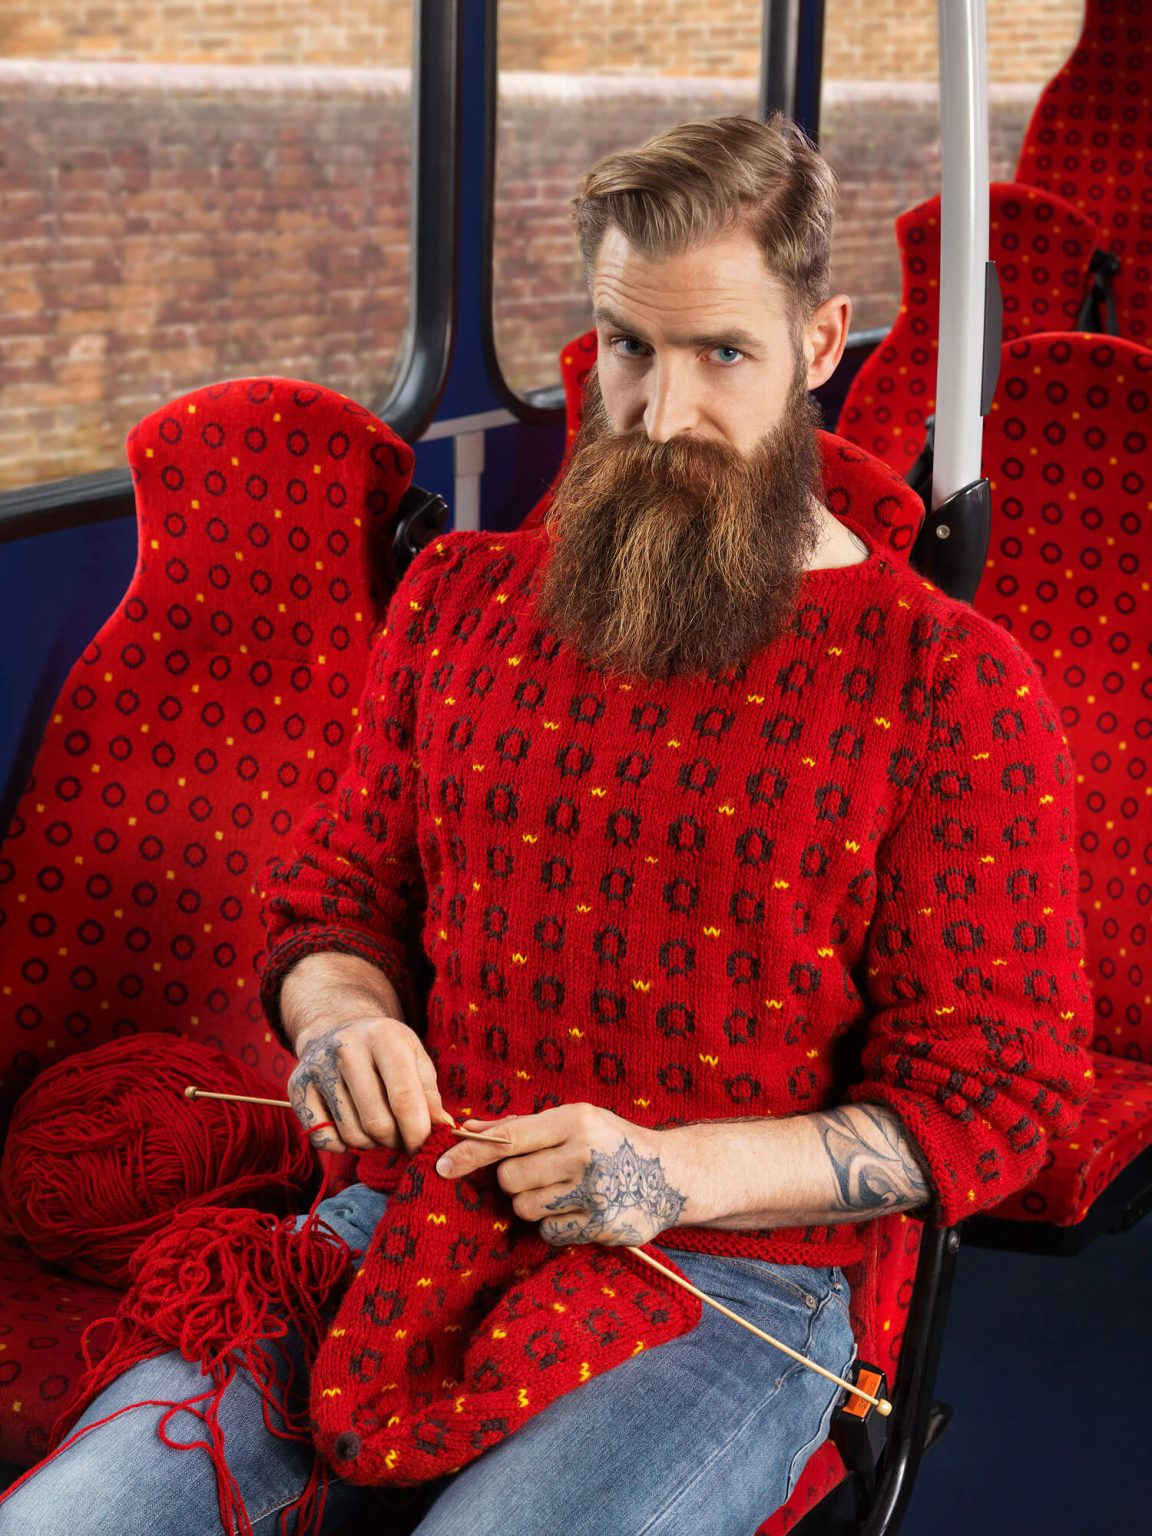 Custom Hand-Knit Sweaters Blend Subjects into Urban Environments -portraits, photographer, photo-project, gohome